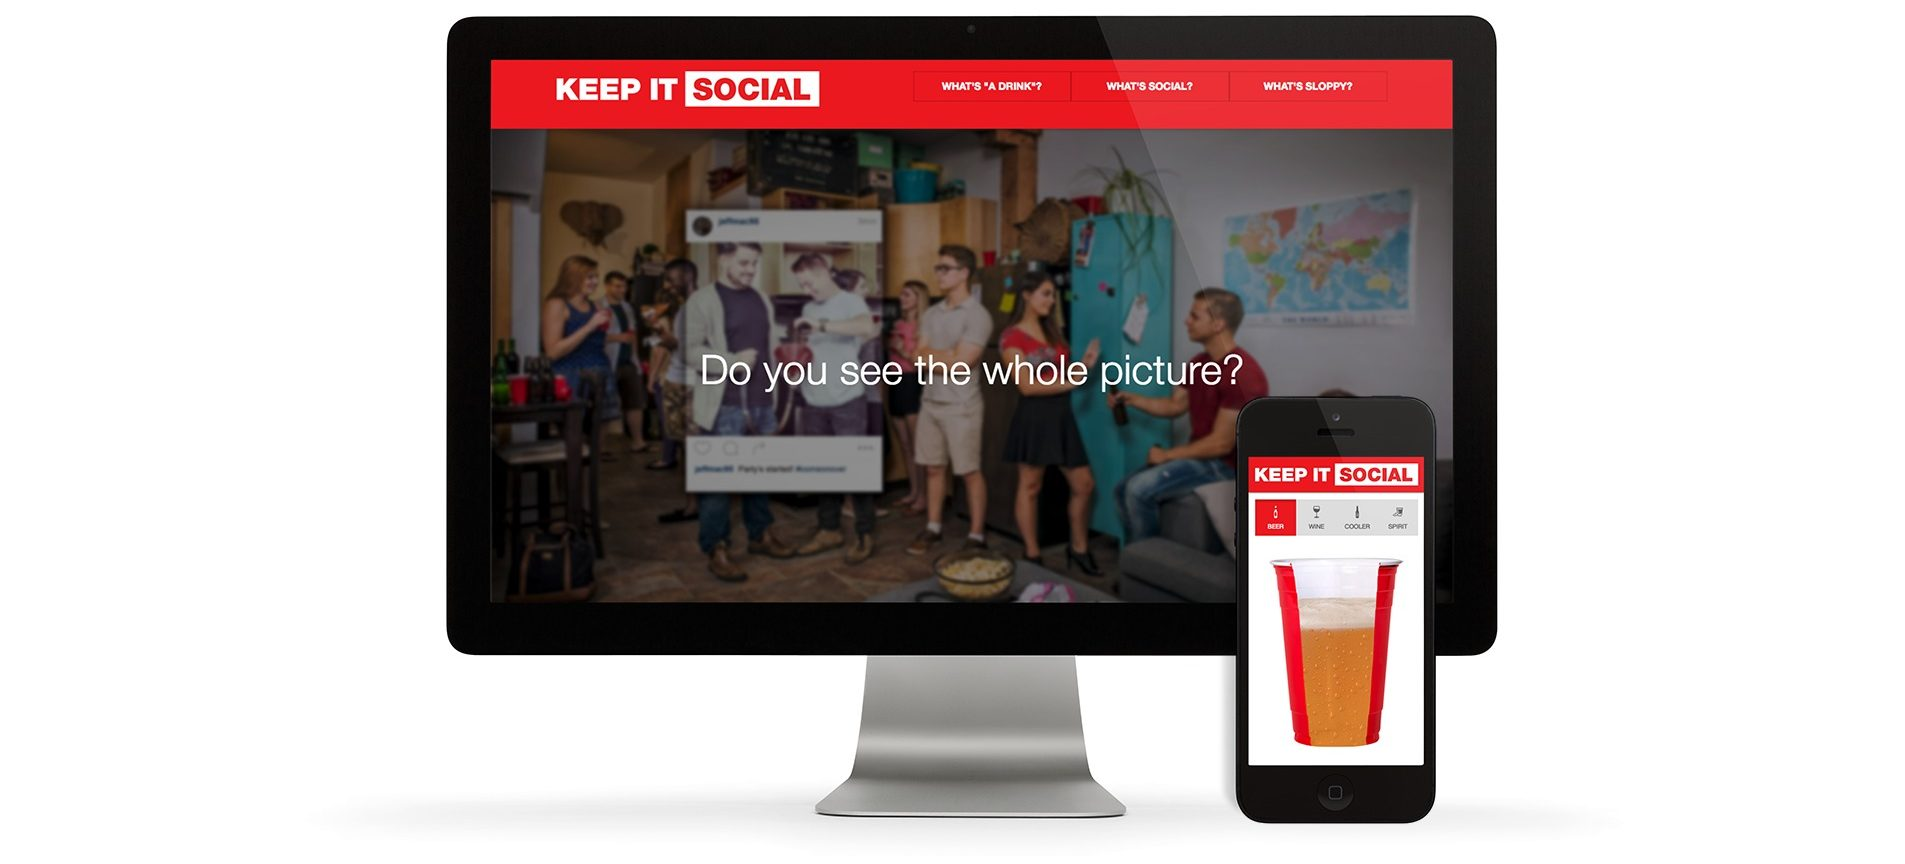 NSLC Keep it social website and digital app